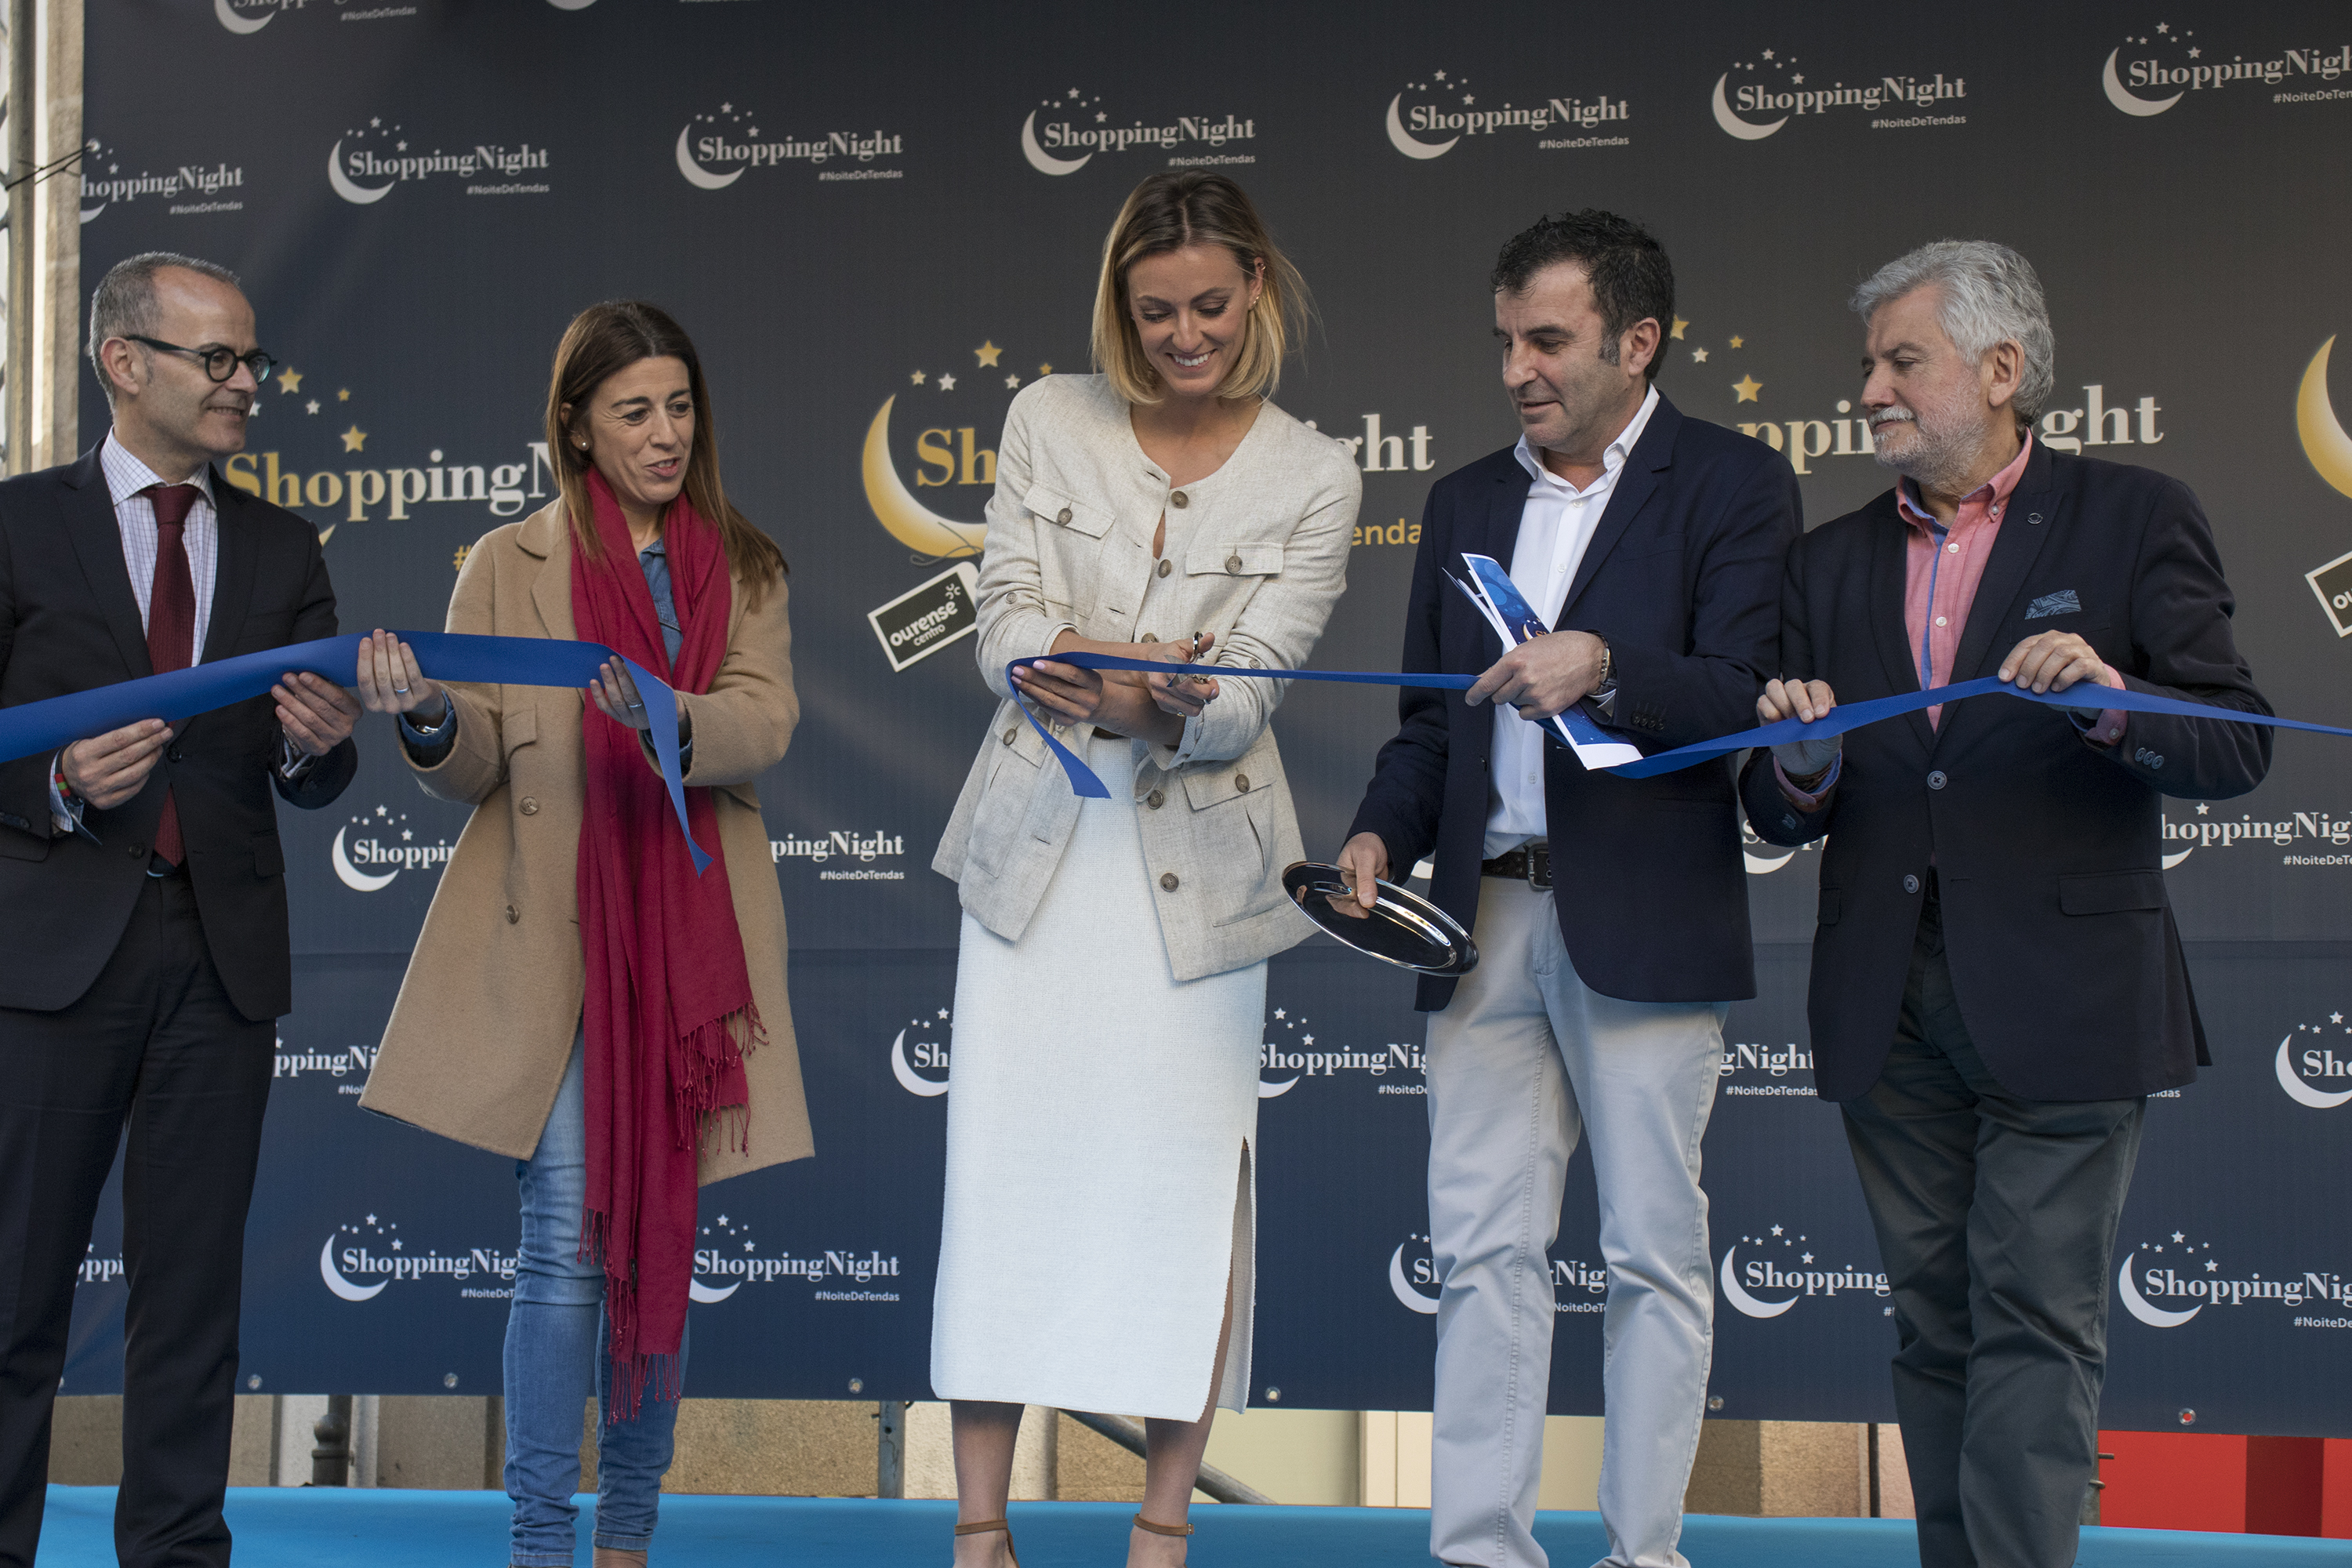 Inauguracion shopping night Cristina Bermudez